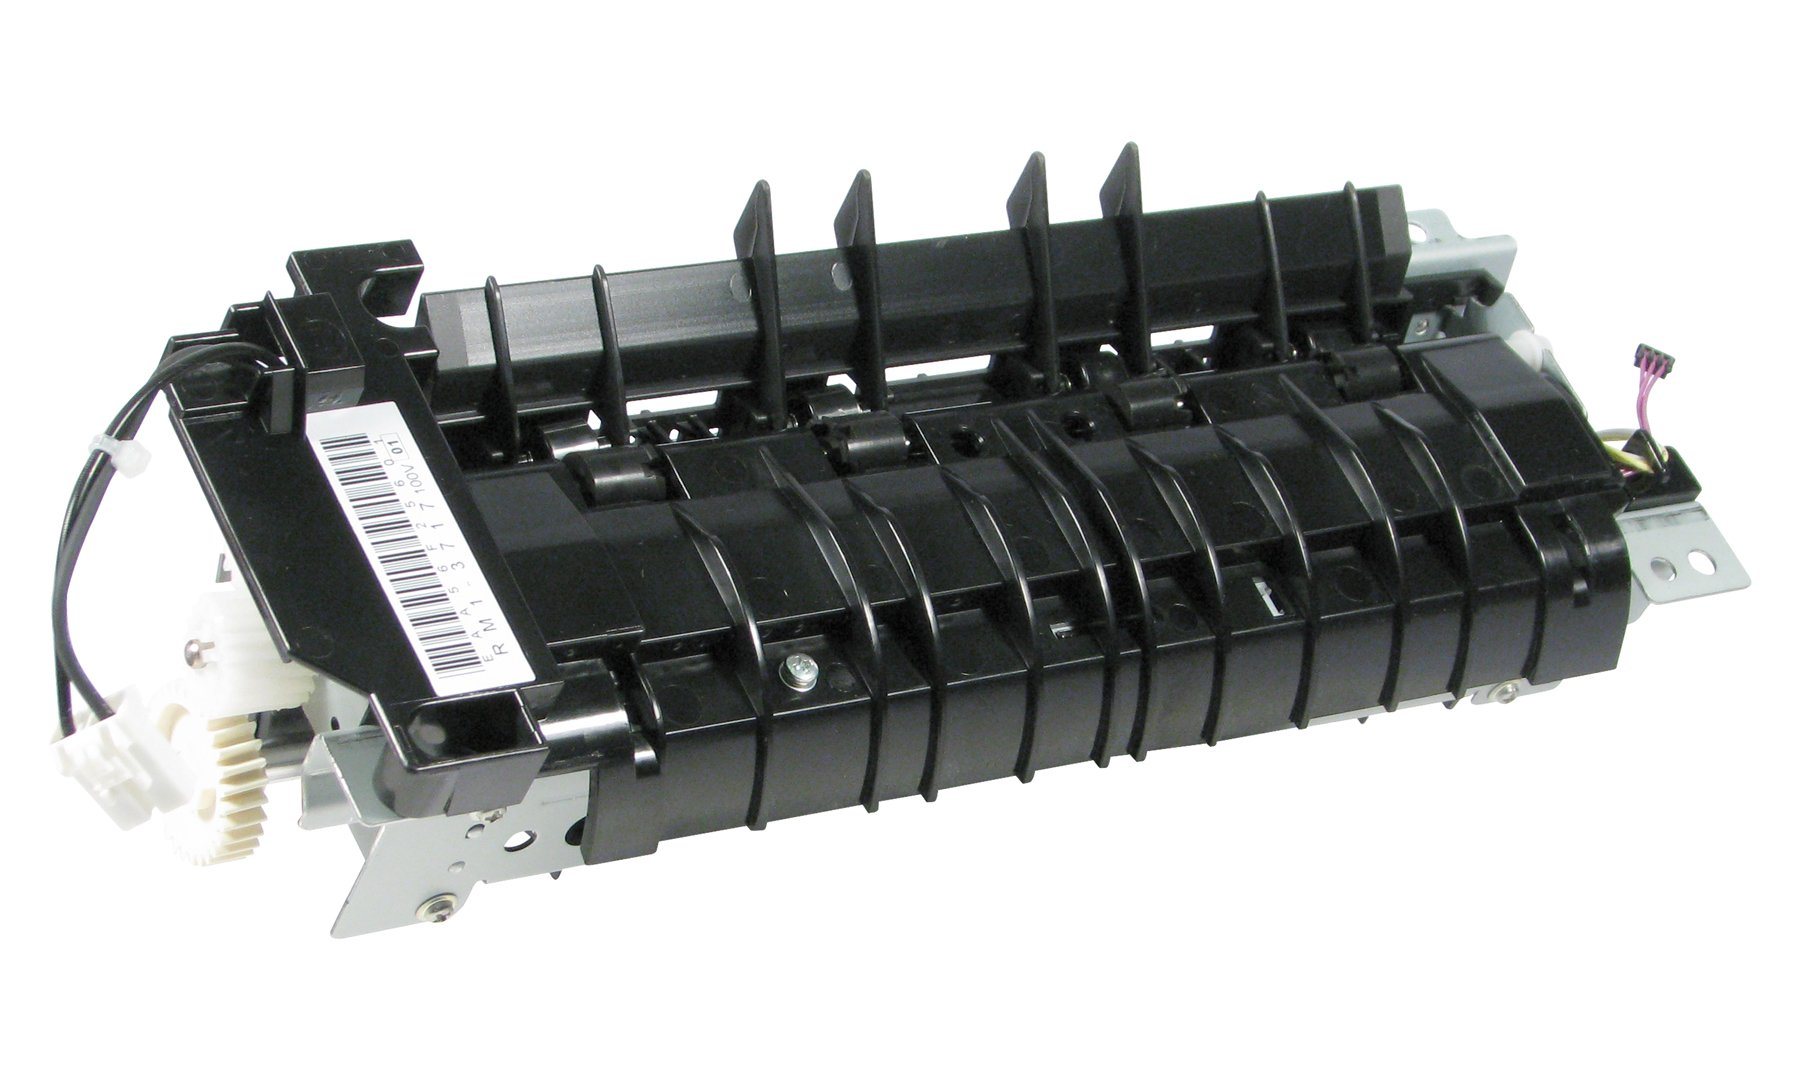 DPI RM1-3717-REF Refurbished Fuser Assembly for HP by DPI